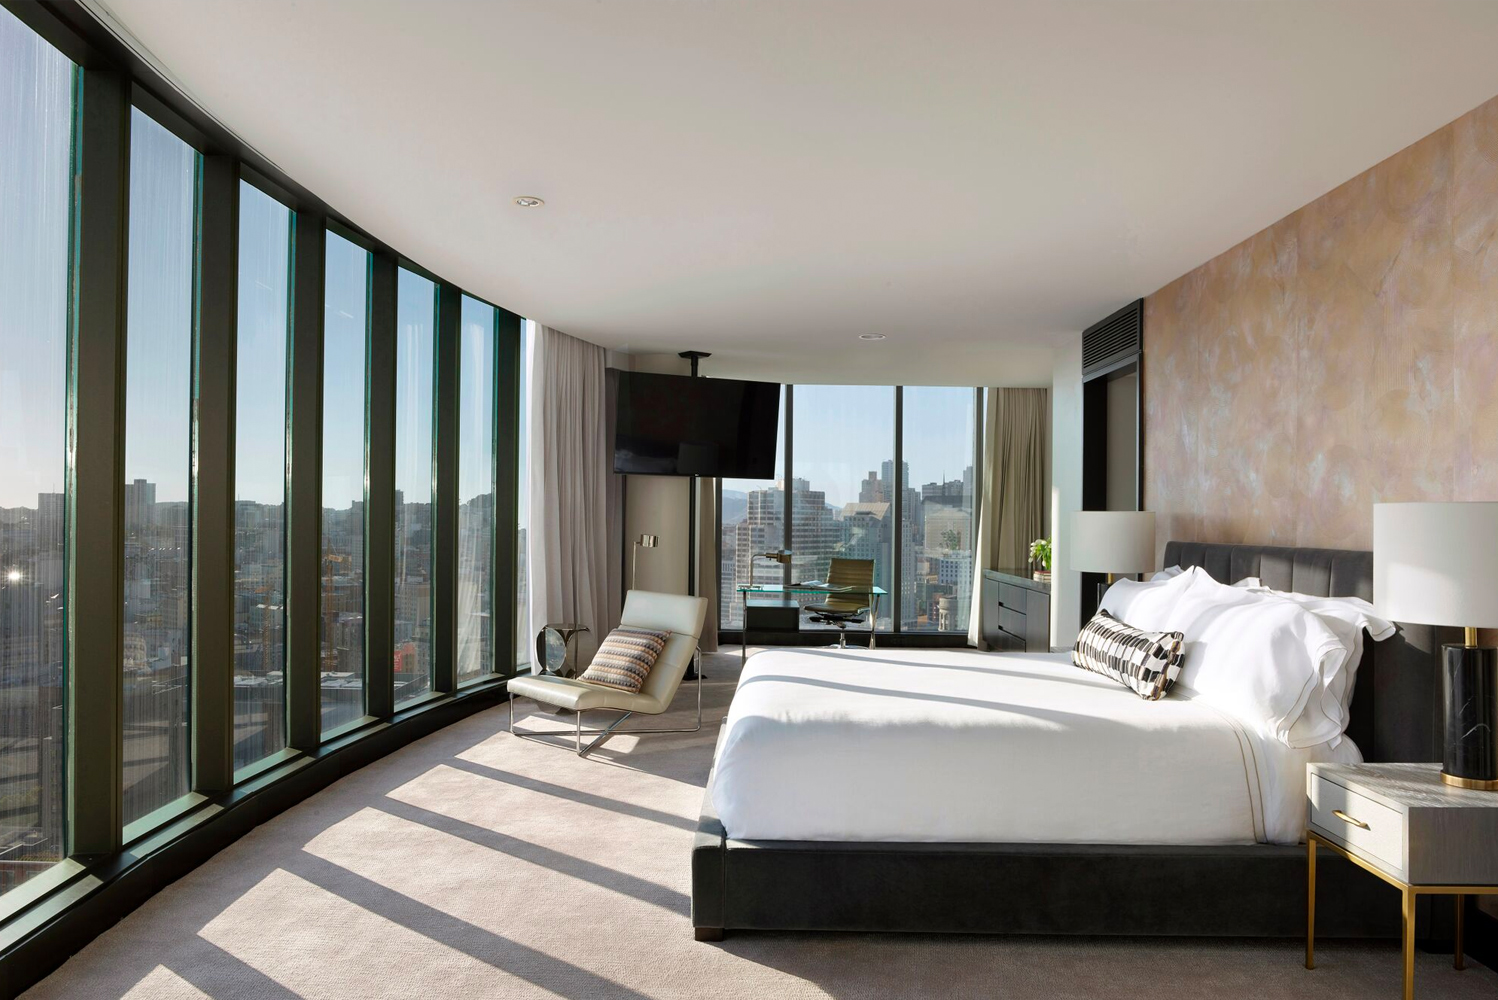 The InterContinental San Francisco Hotel revealed an entirely redesigned Presidential Suite, a 2,000 square-foot penthouse luxury suite located on the property's 31st and 32nd floors.